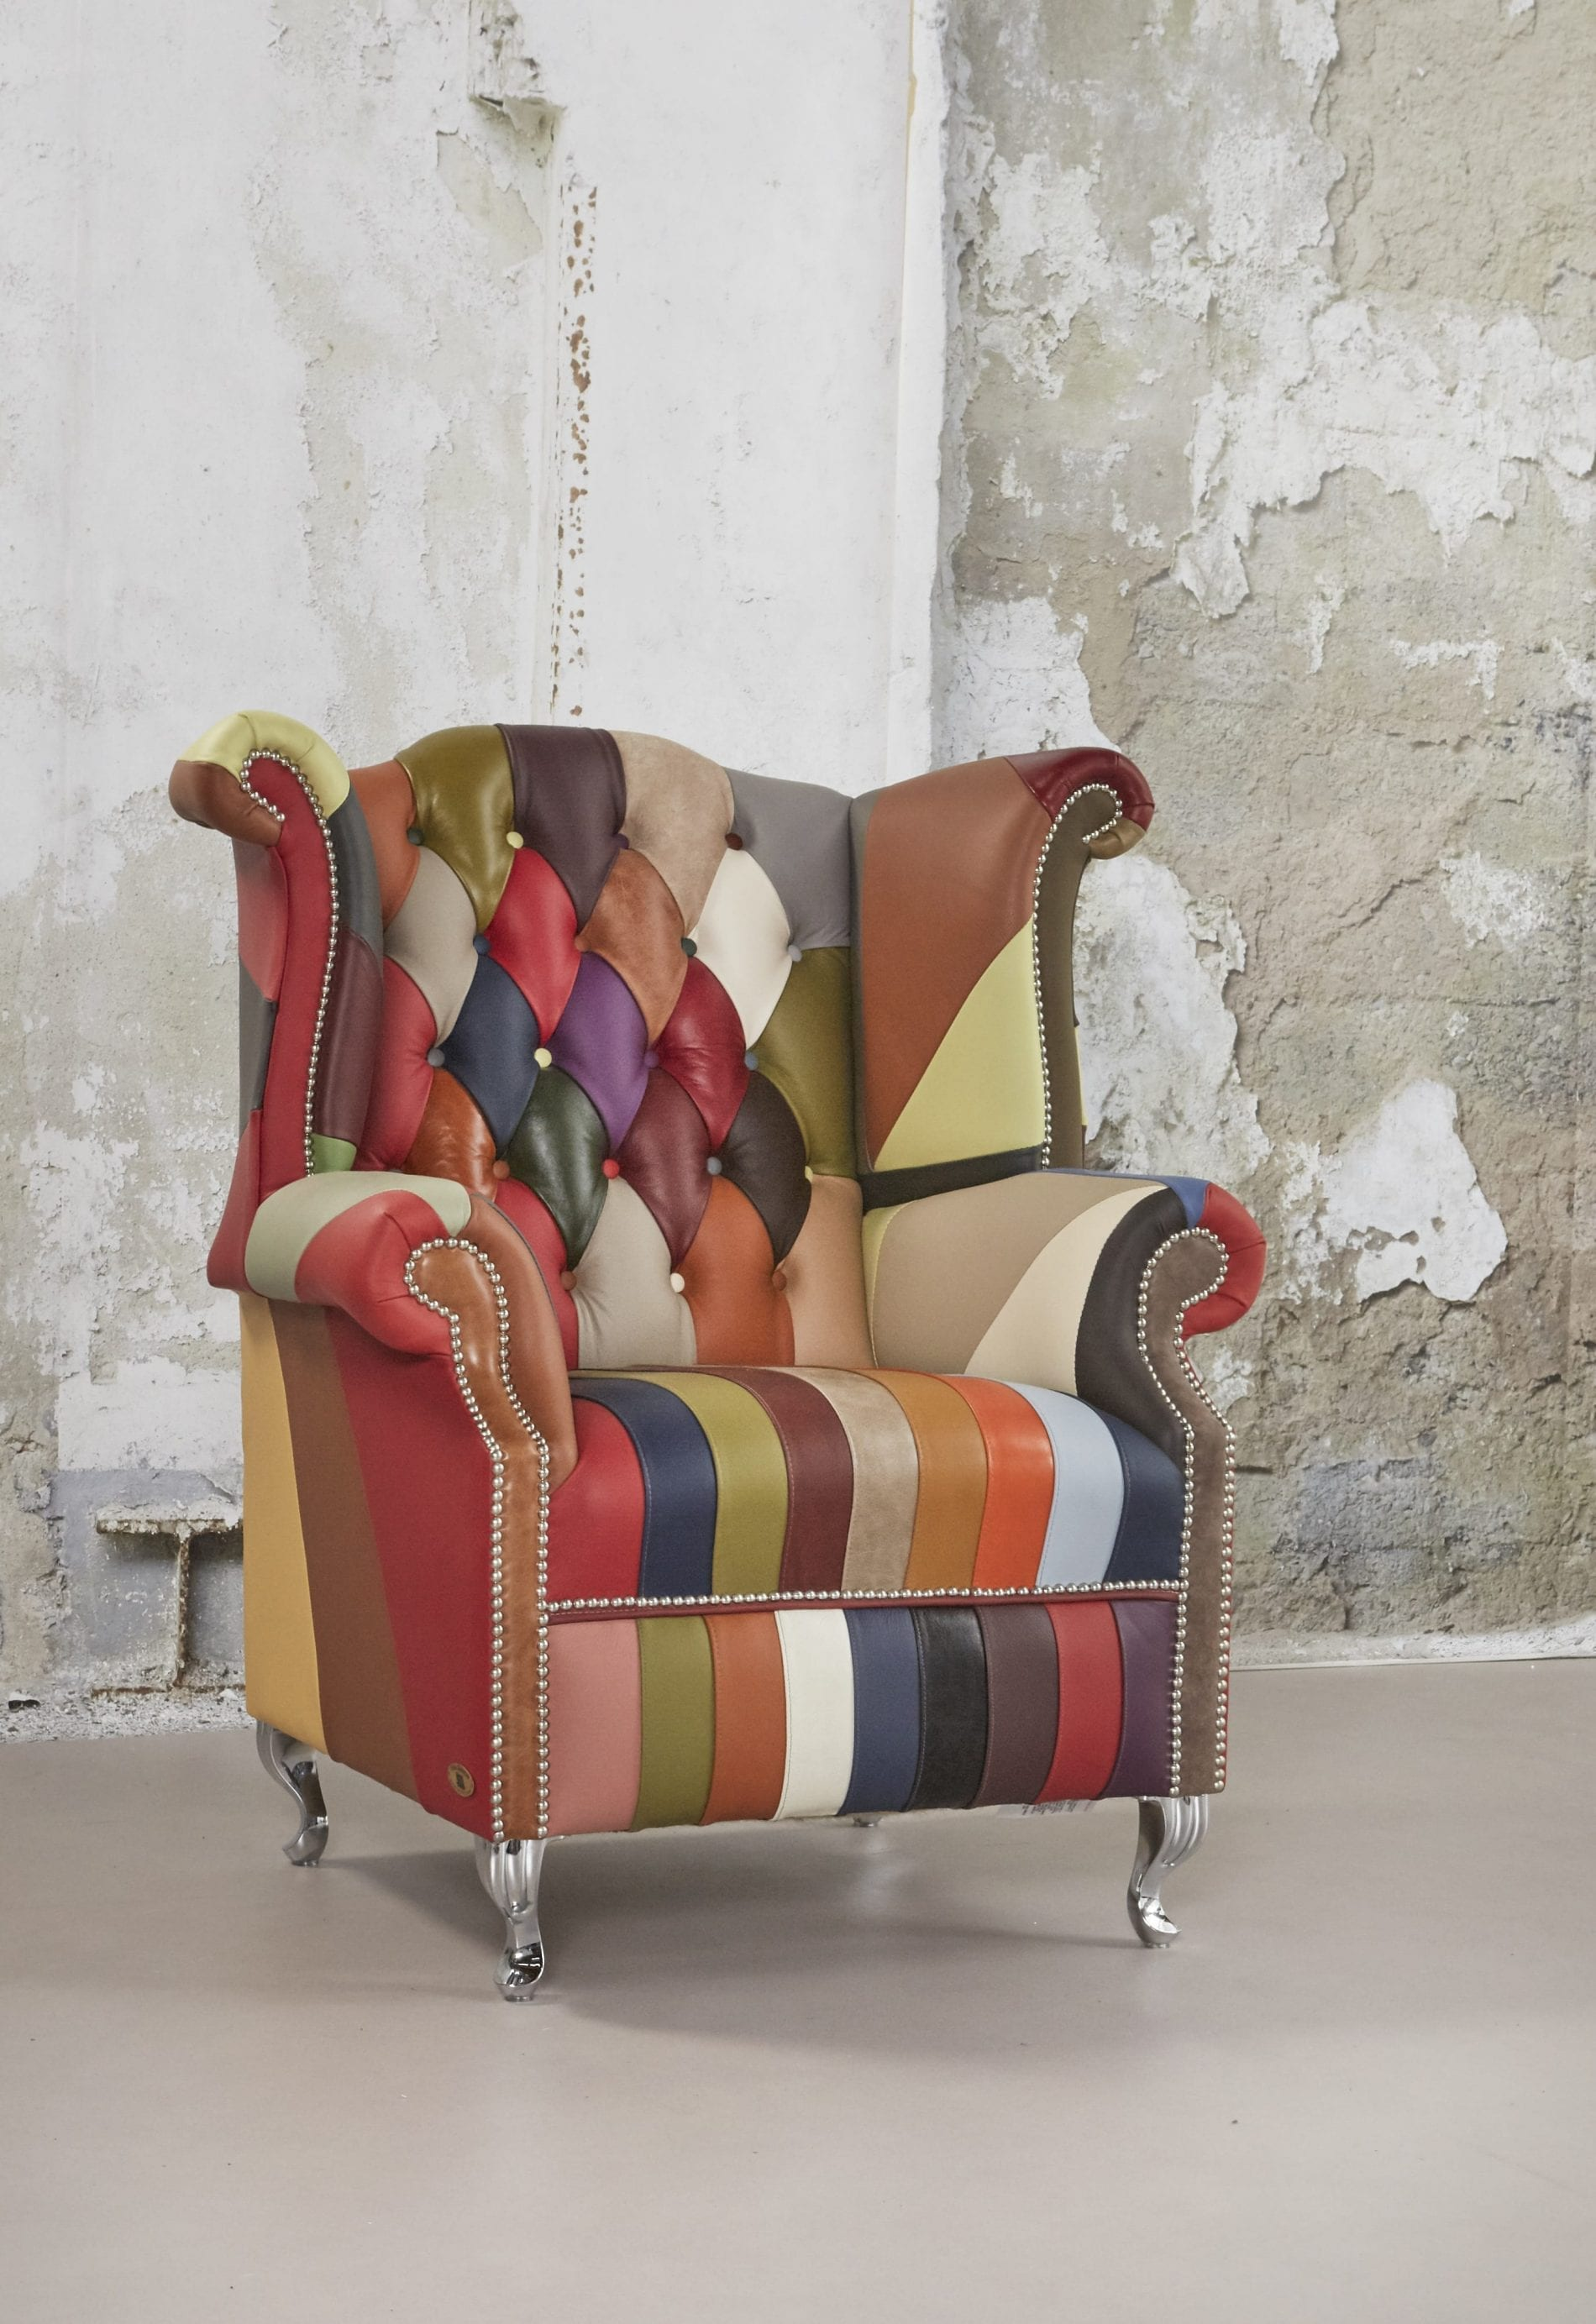 delta-chesterfield-eigentijds-multi-color-hb-scrolwing-stripe-seat-2